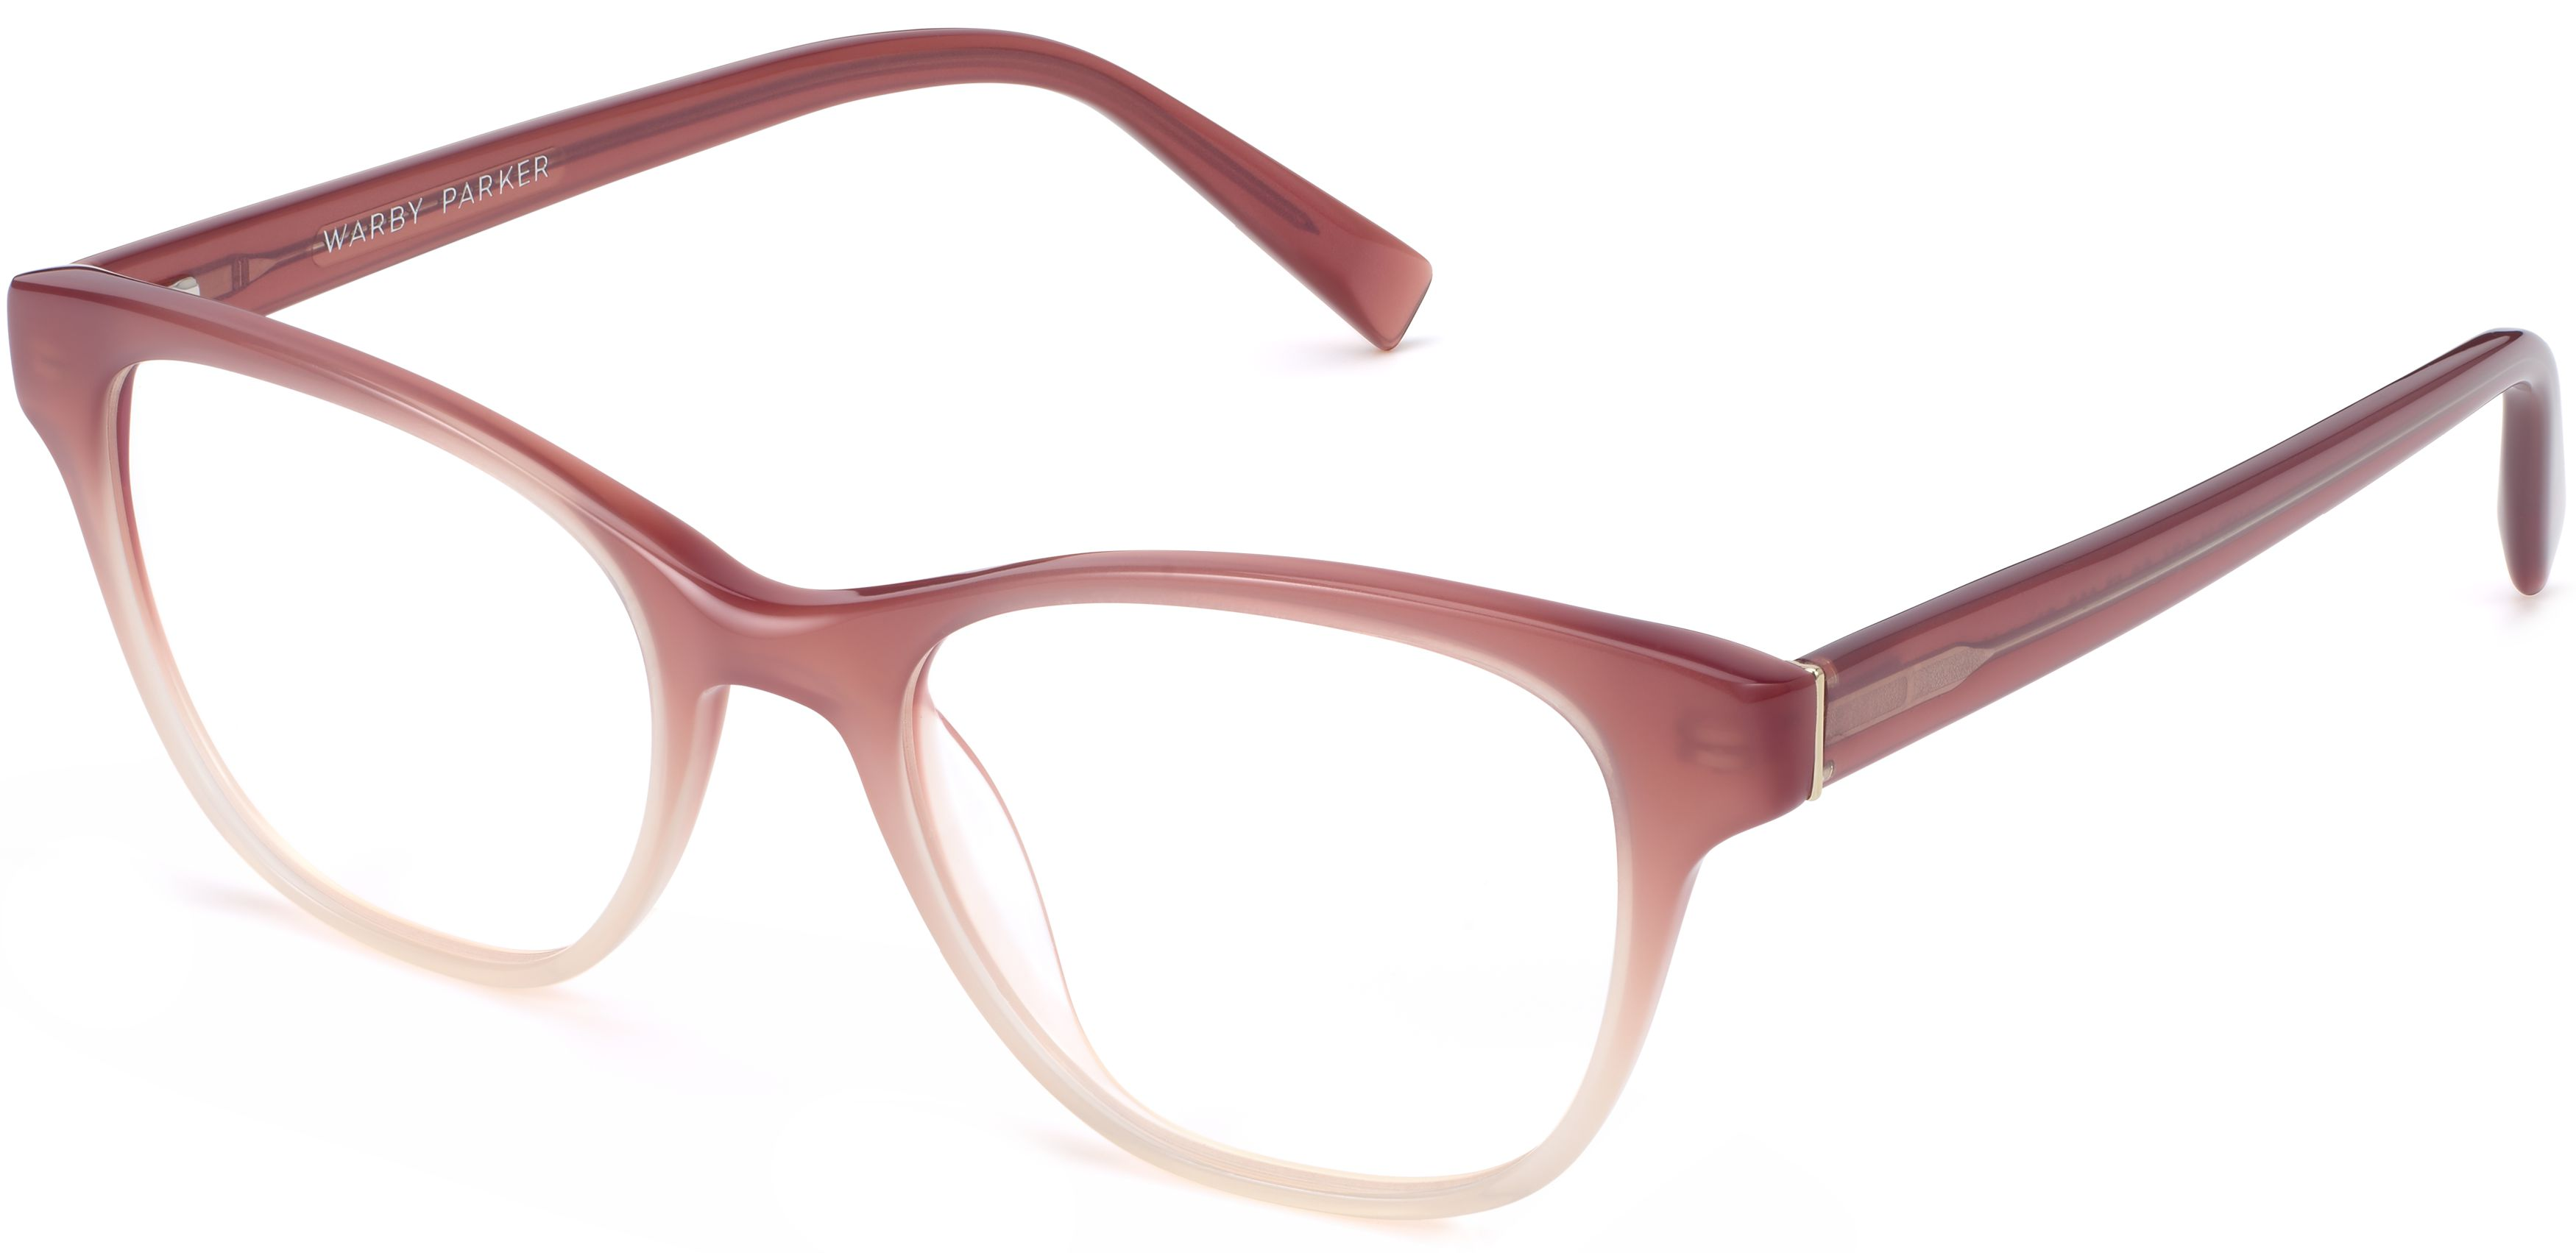 6ad5665f62 Amelia Eyeglasses in Rose Clay Fade for Women